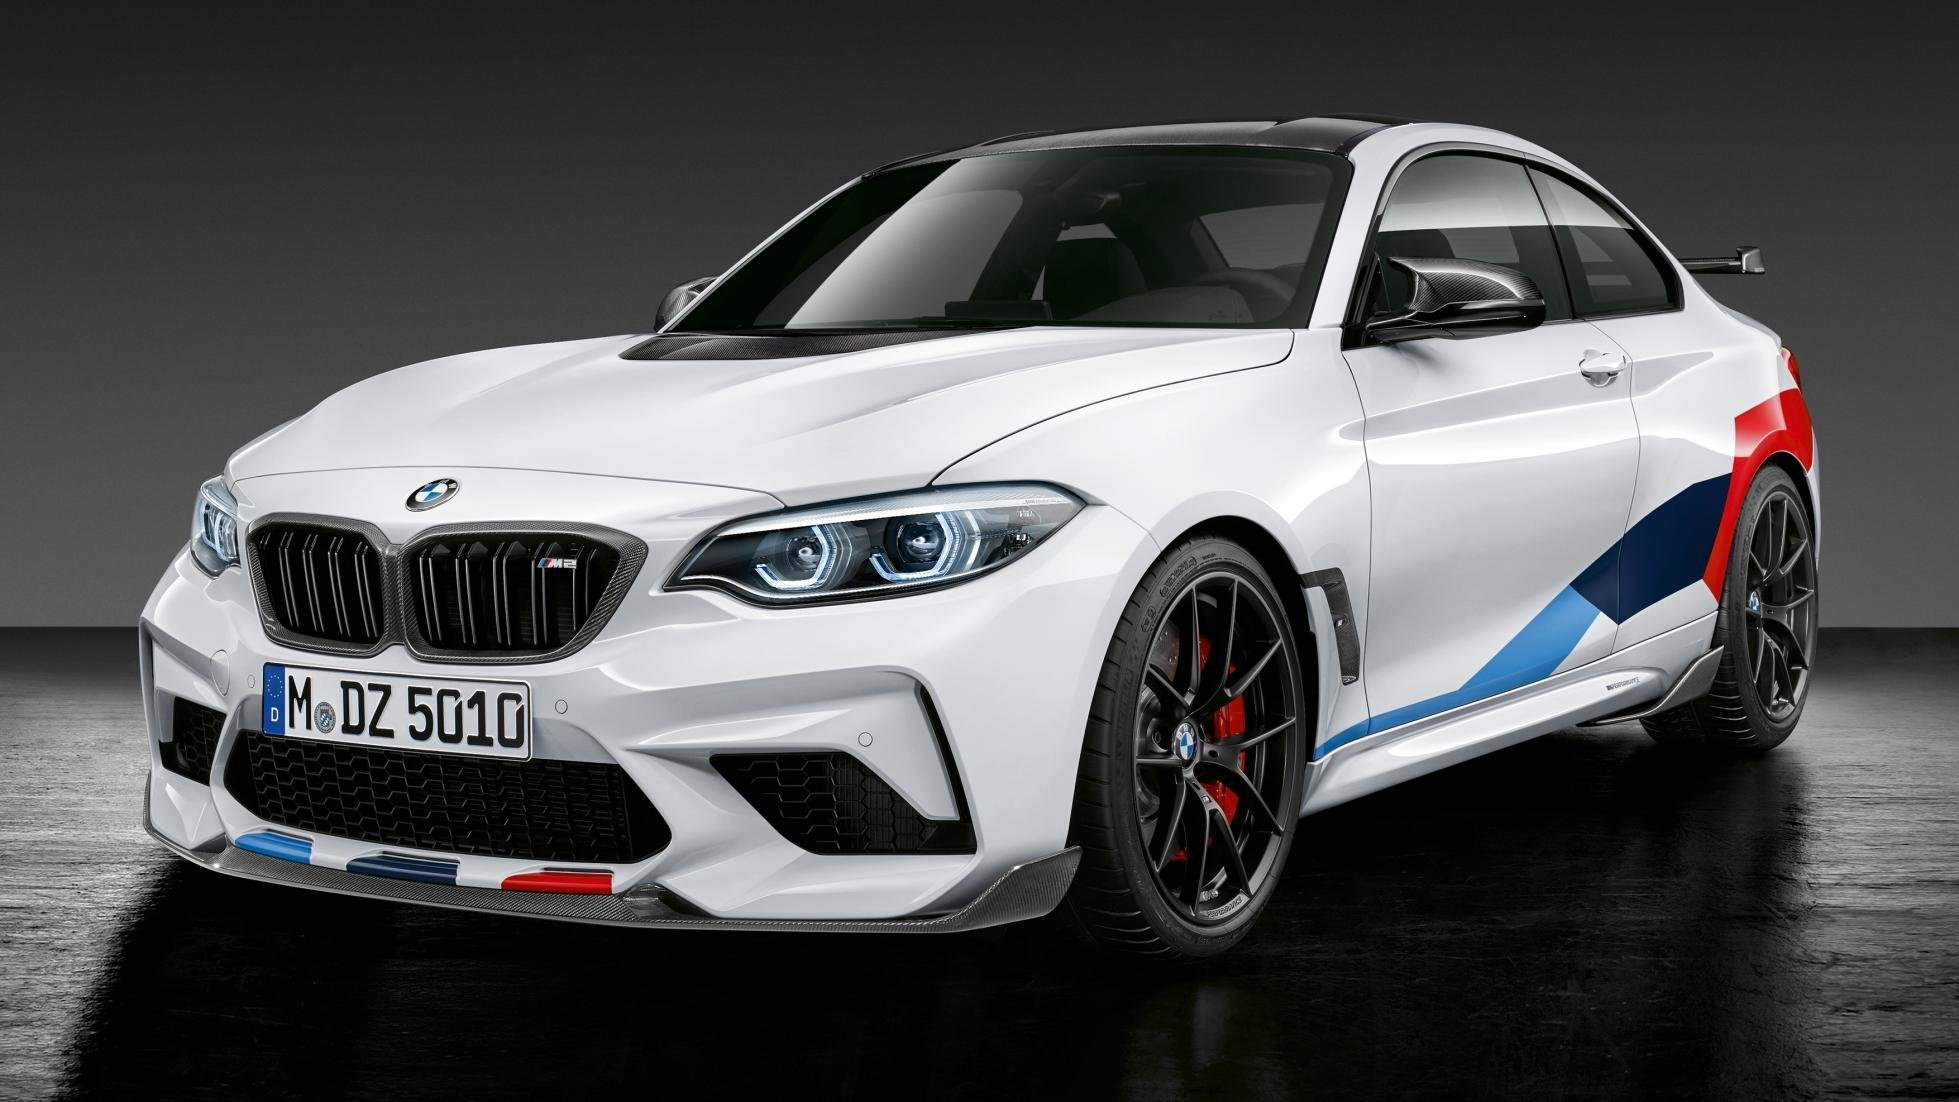 Latest Bmw M2 Competition Car Photo Background Free Download